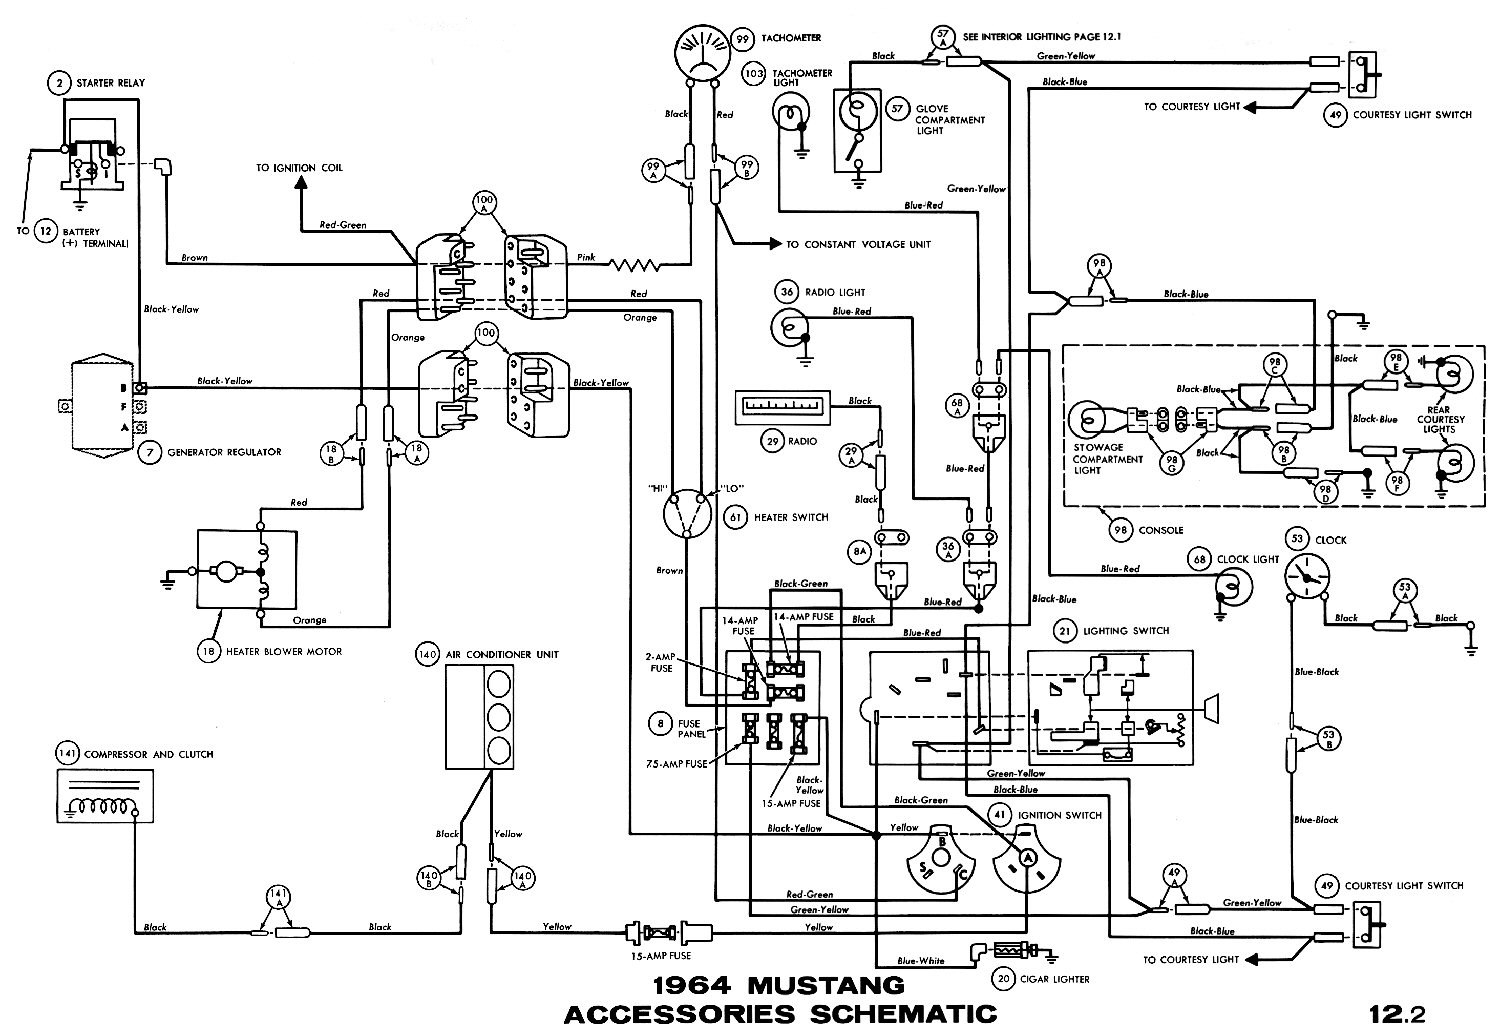 hight resolution of 1964 mustang accessories pictorial or schematic air conditioner